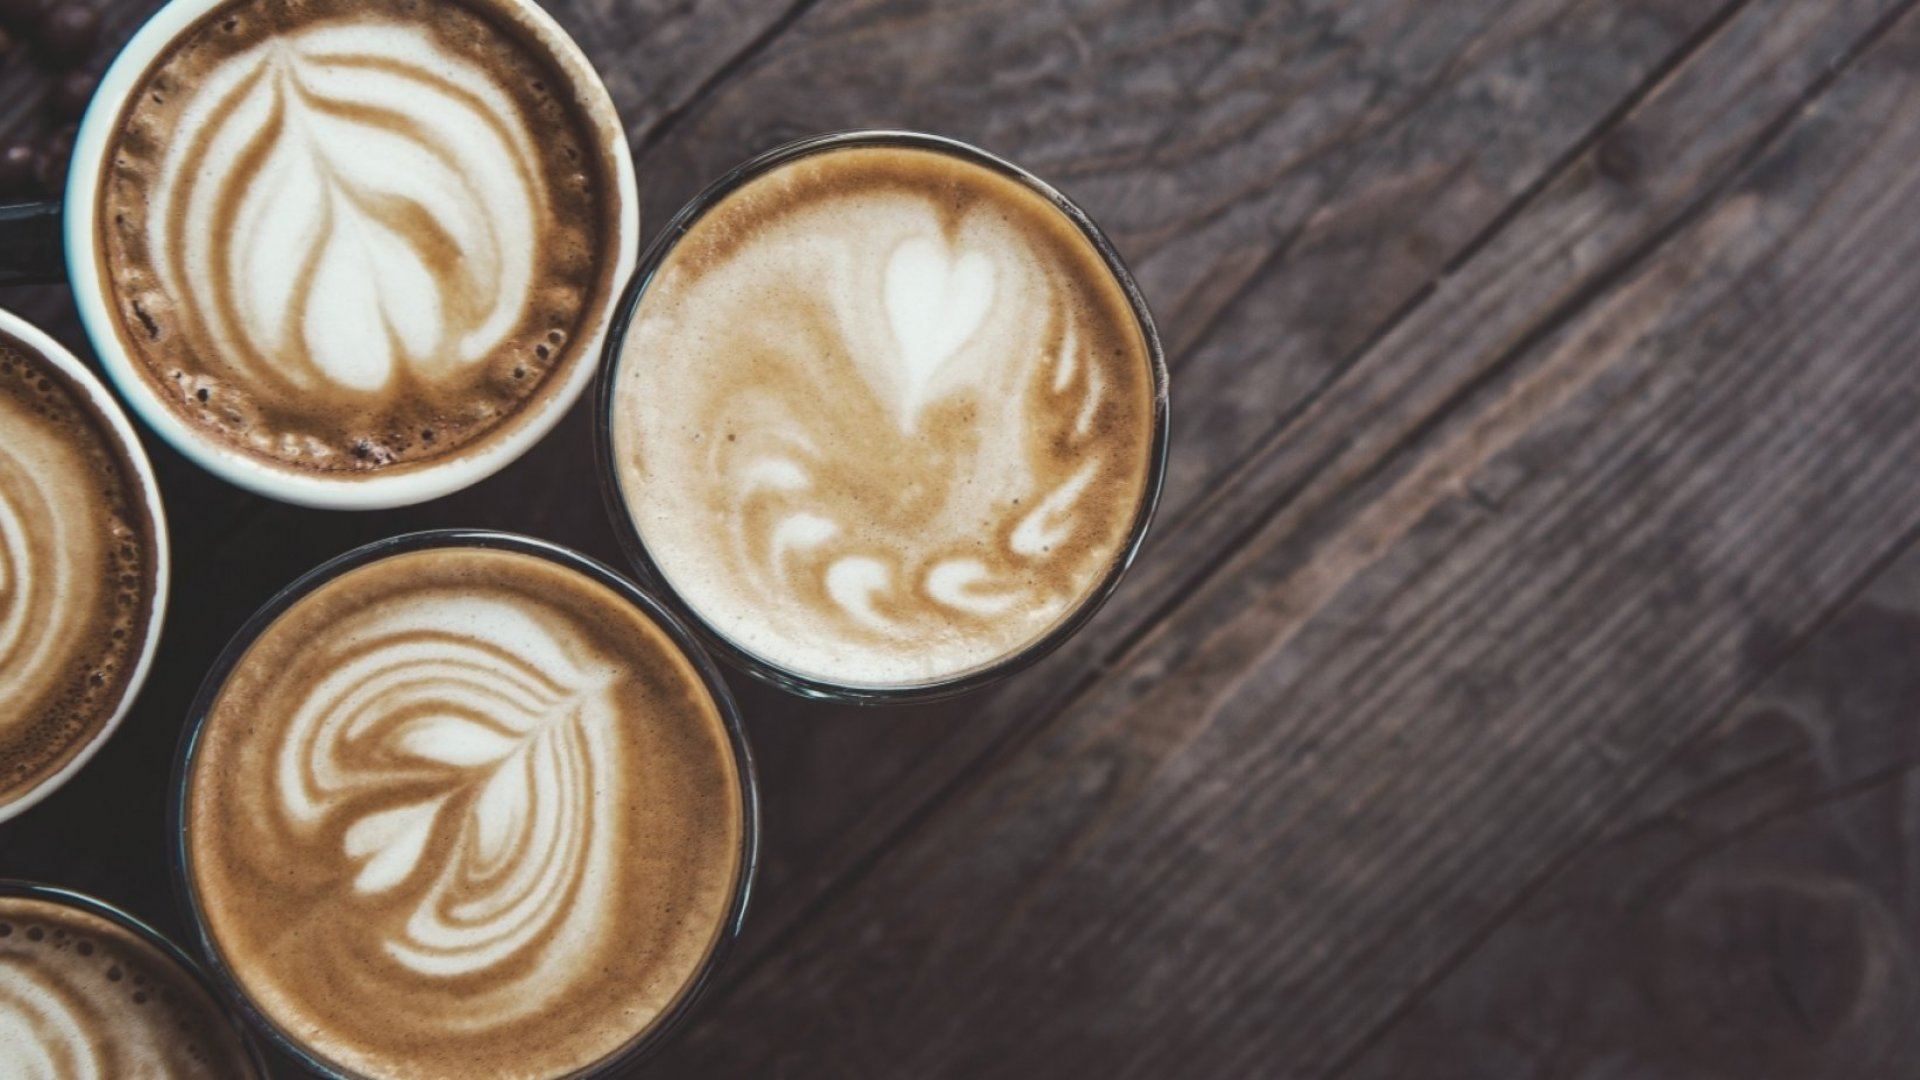 I Took 250 Coffee Meetings in 400 Days. Here's What I Learned About Networking